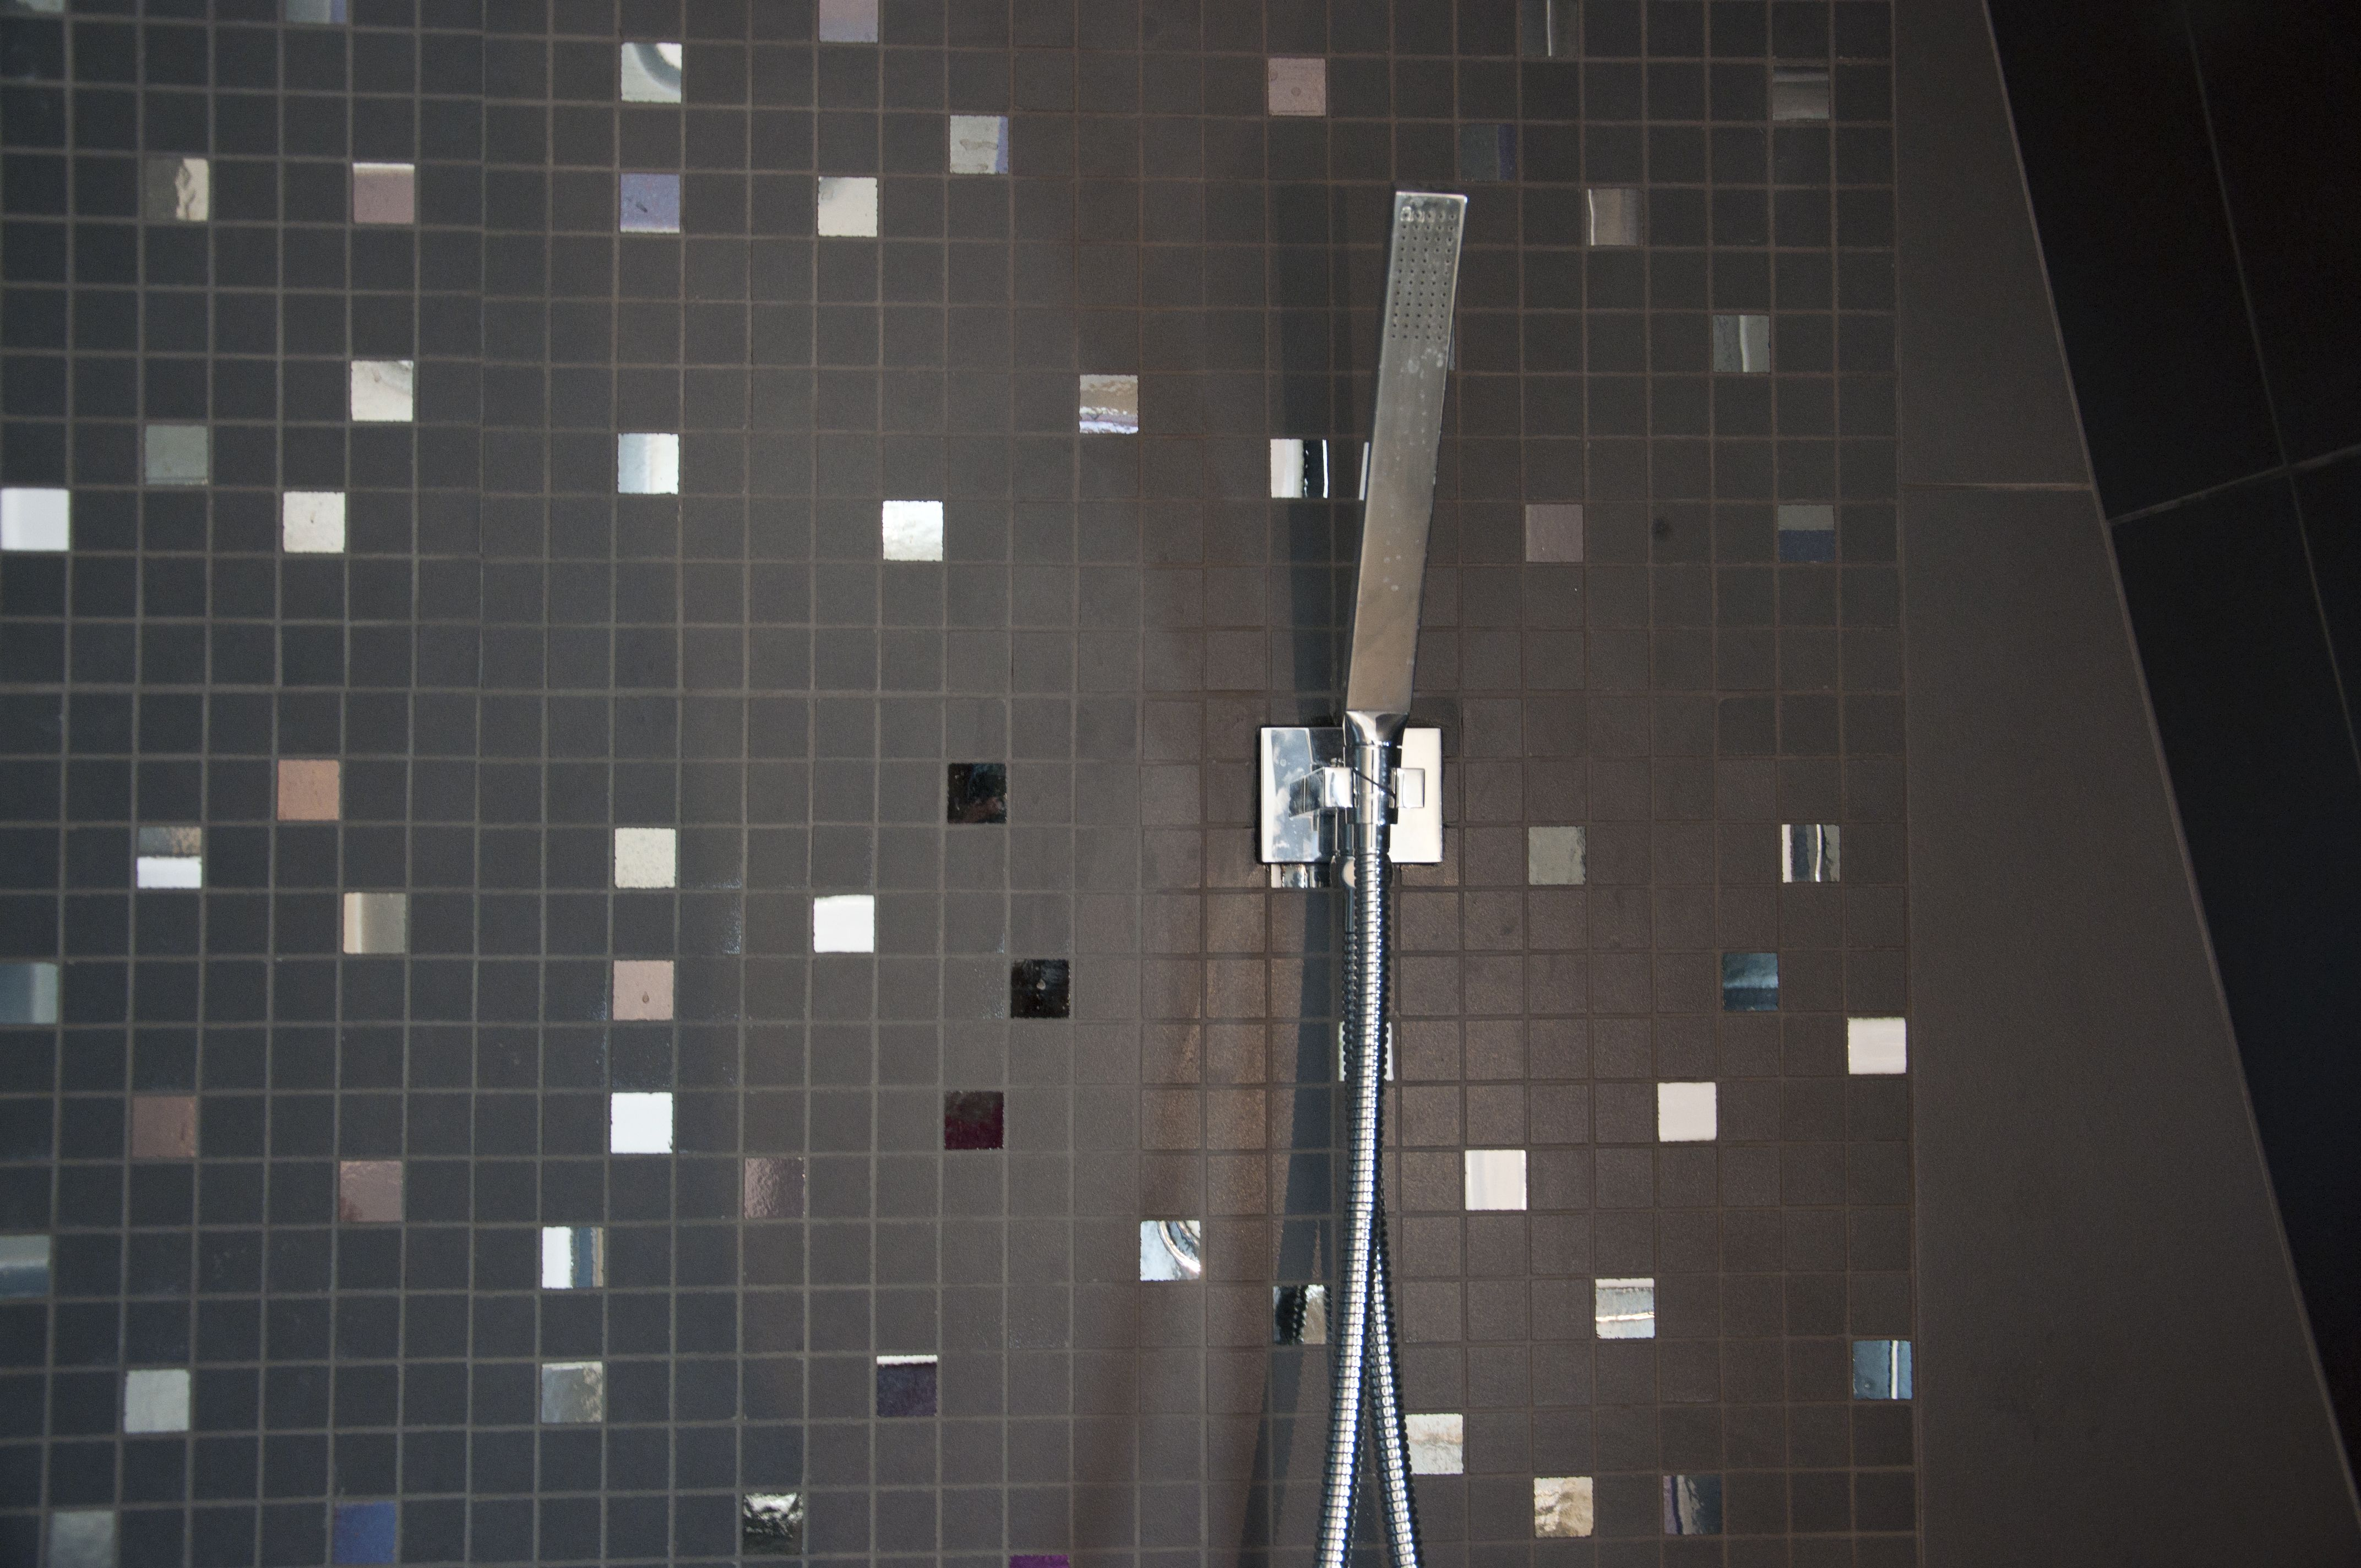 mosaique et robinetterie encastr e dans douche l 39 italienne florence tory www f. Black Bedroom Furniture Sets. Home Design Ideas